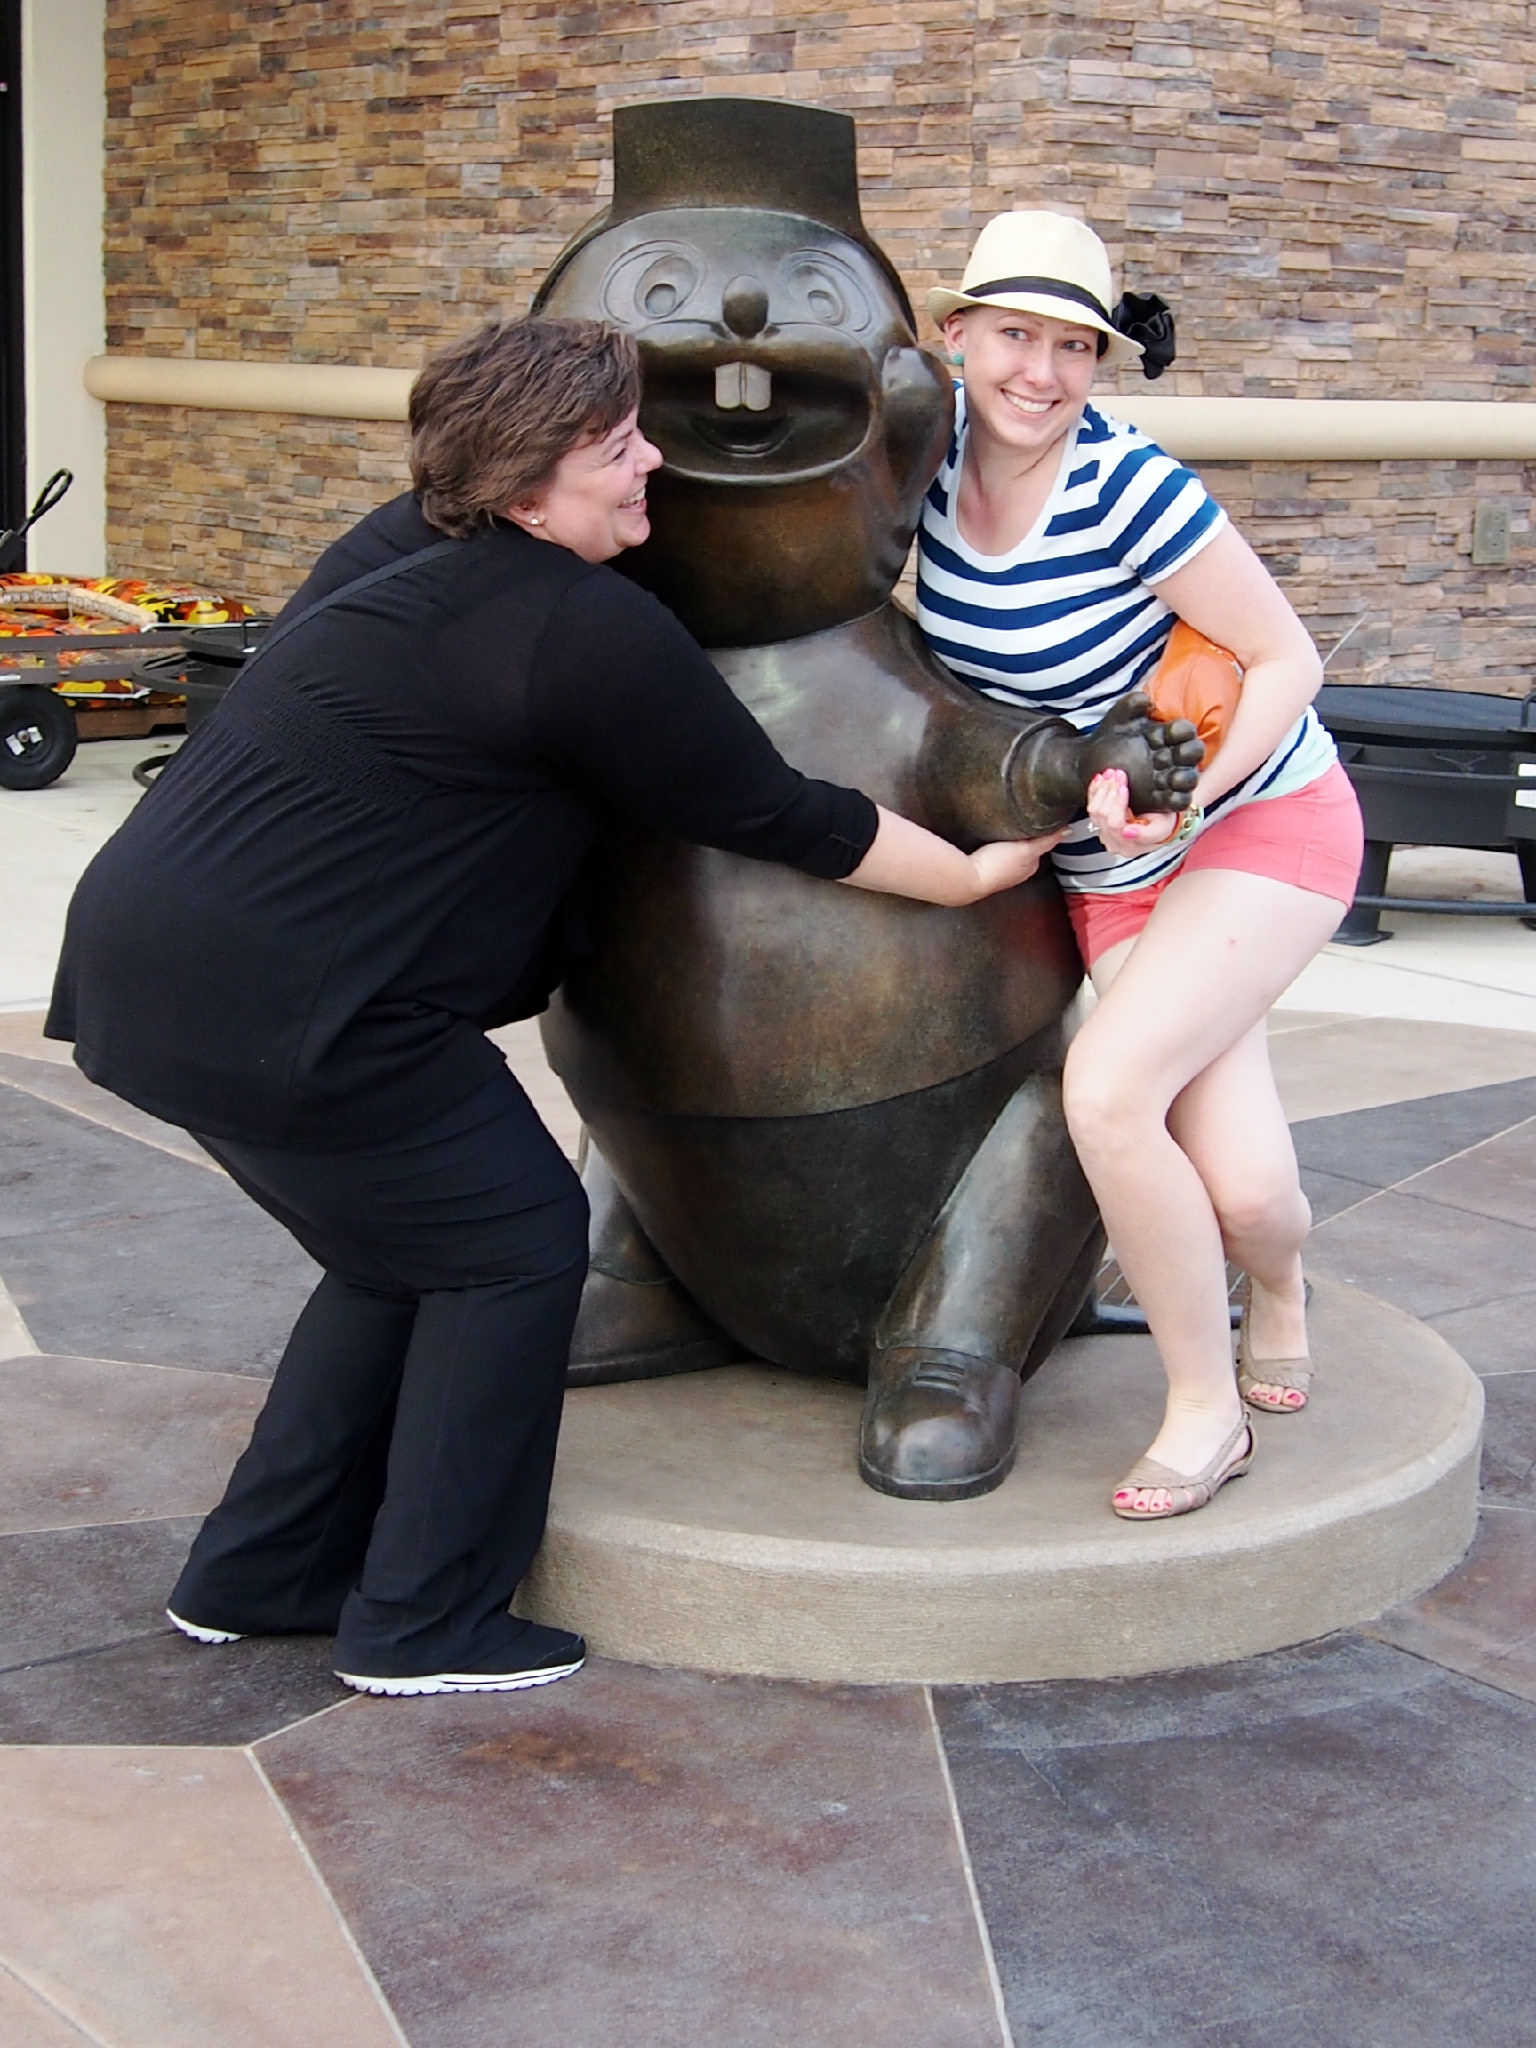 hugging the beaver